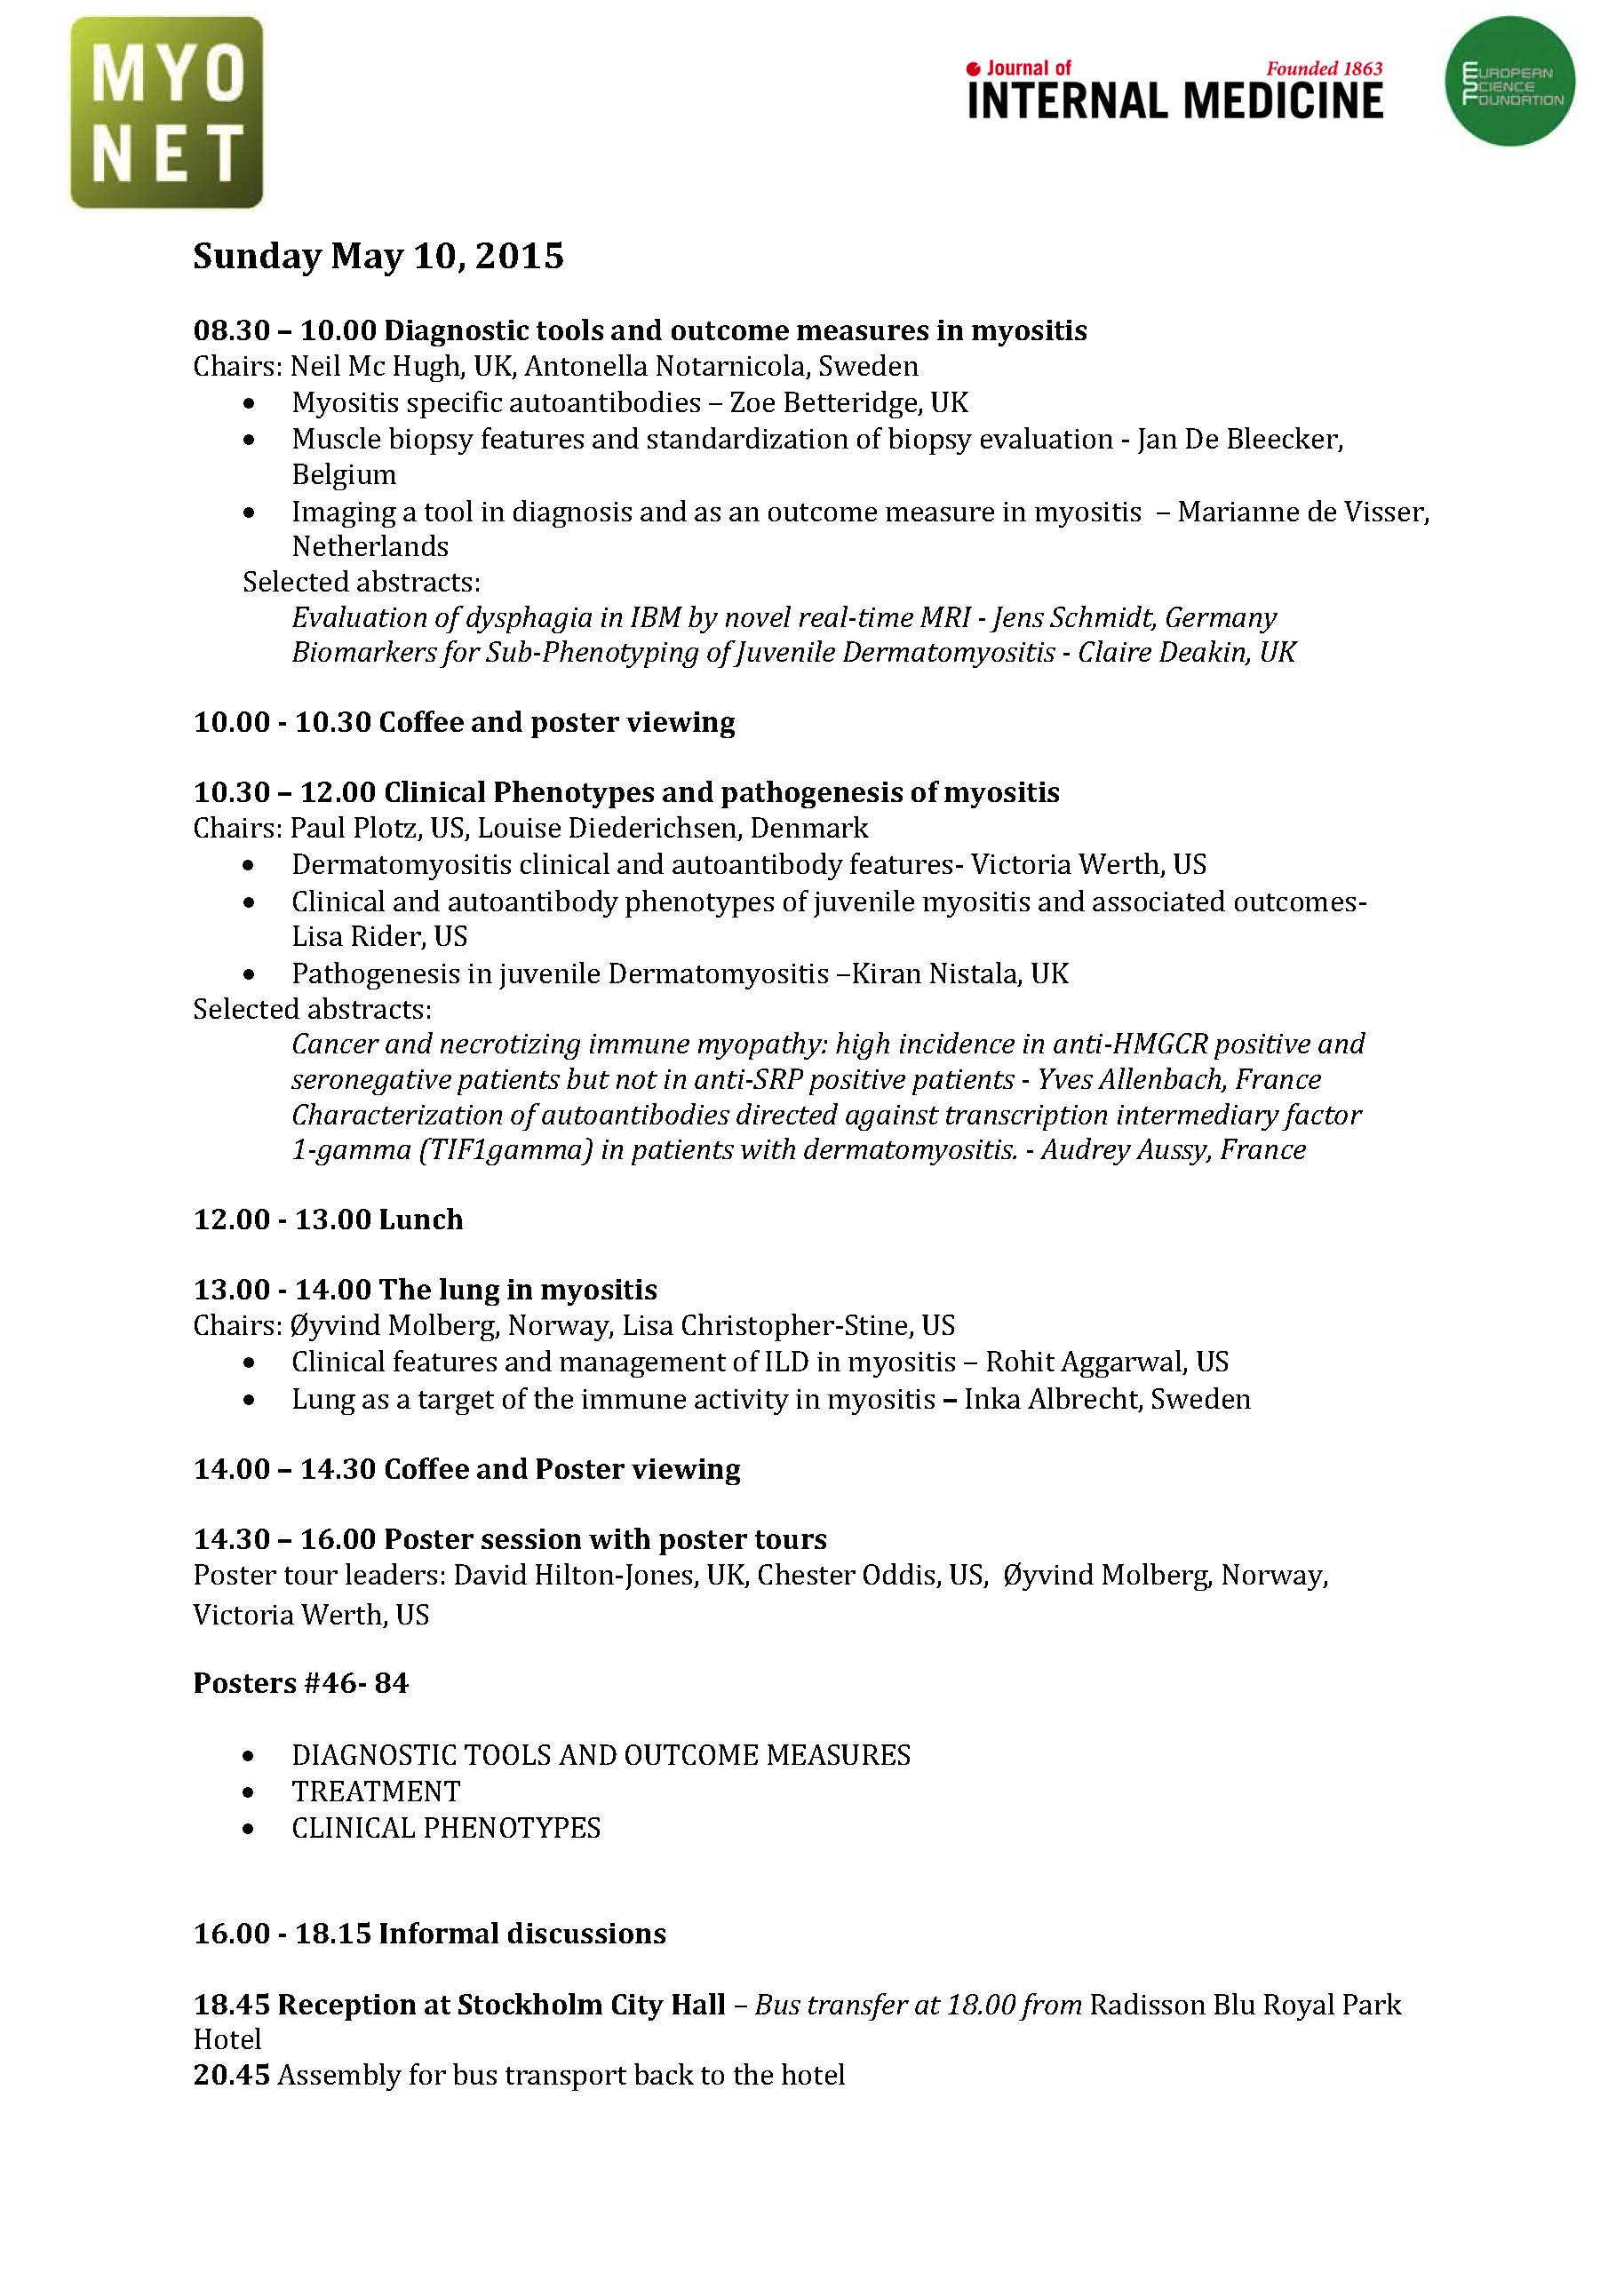 Updated program 2015 conf_150508b_Sida_3